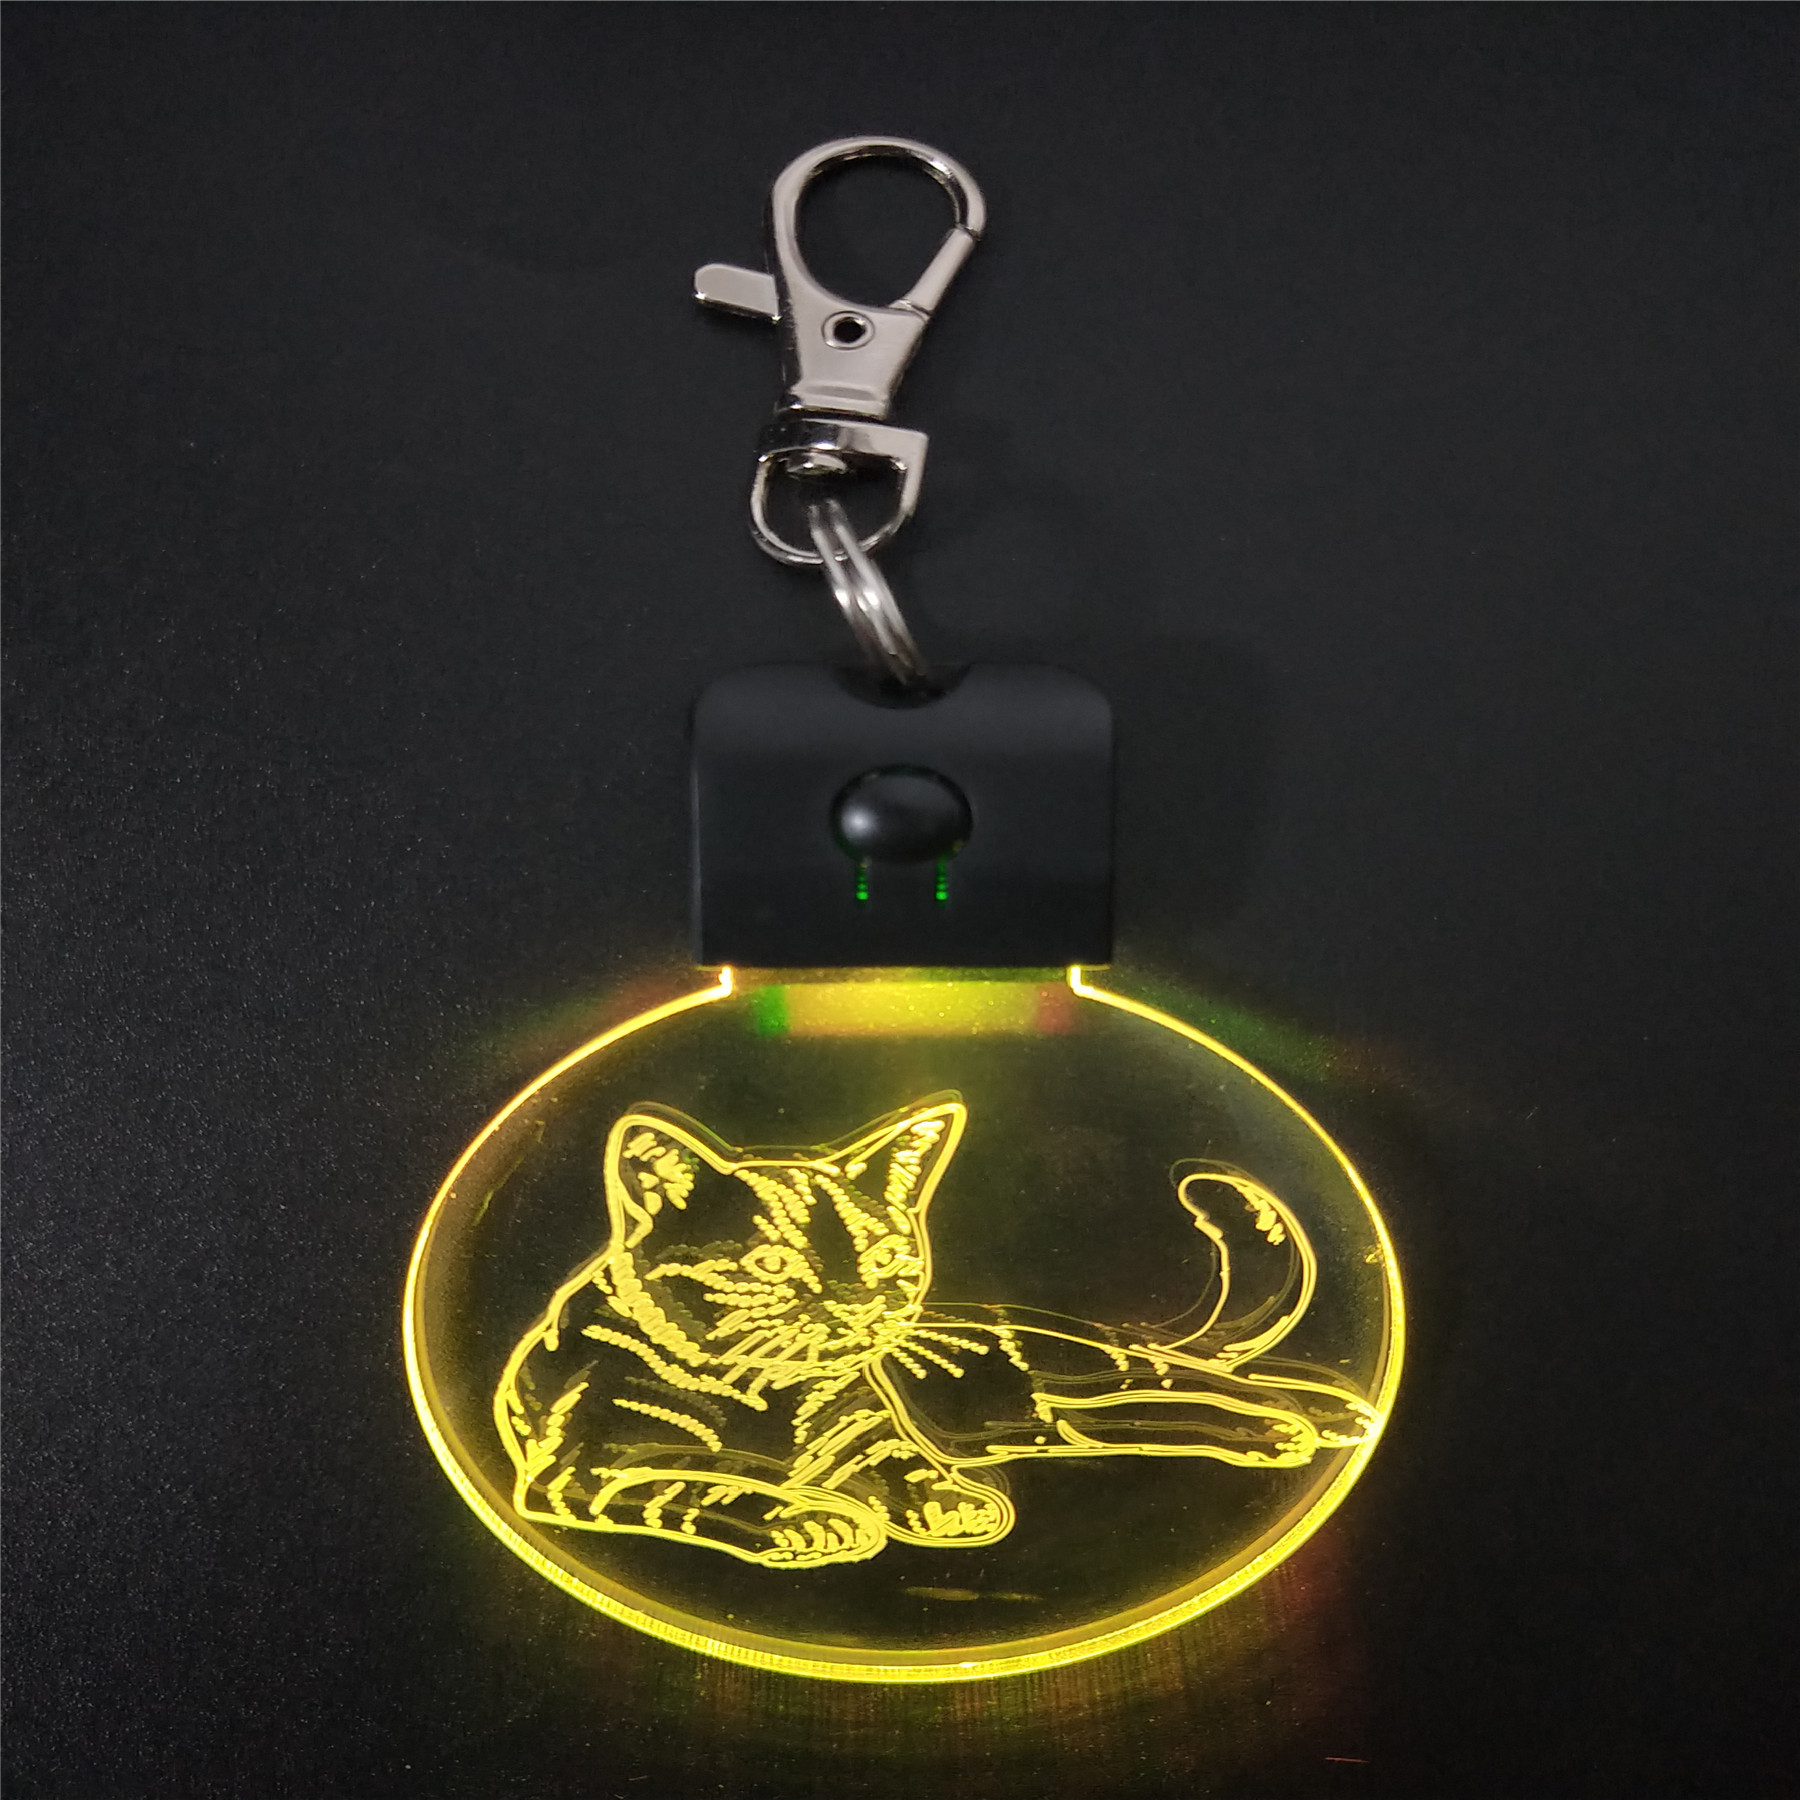 Sleeping Cat KeyChain 3D LED ABS Arylic Night Light Magical Table Lamp Lighting Colors Decoration Gift With Li Battery Dropship